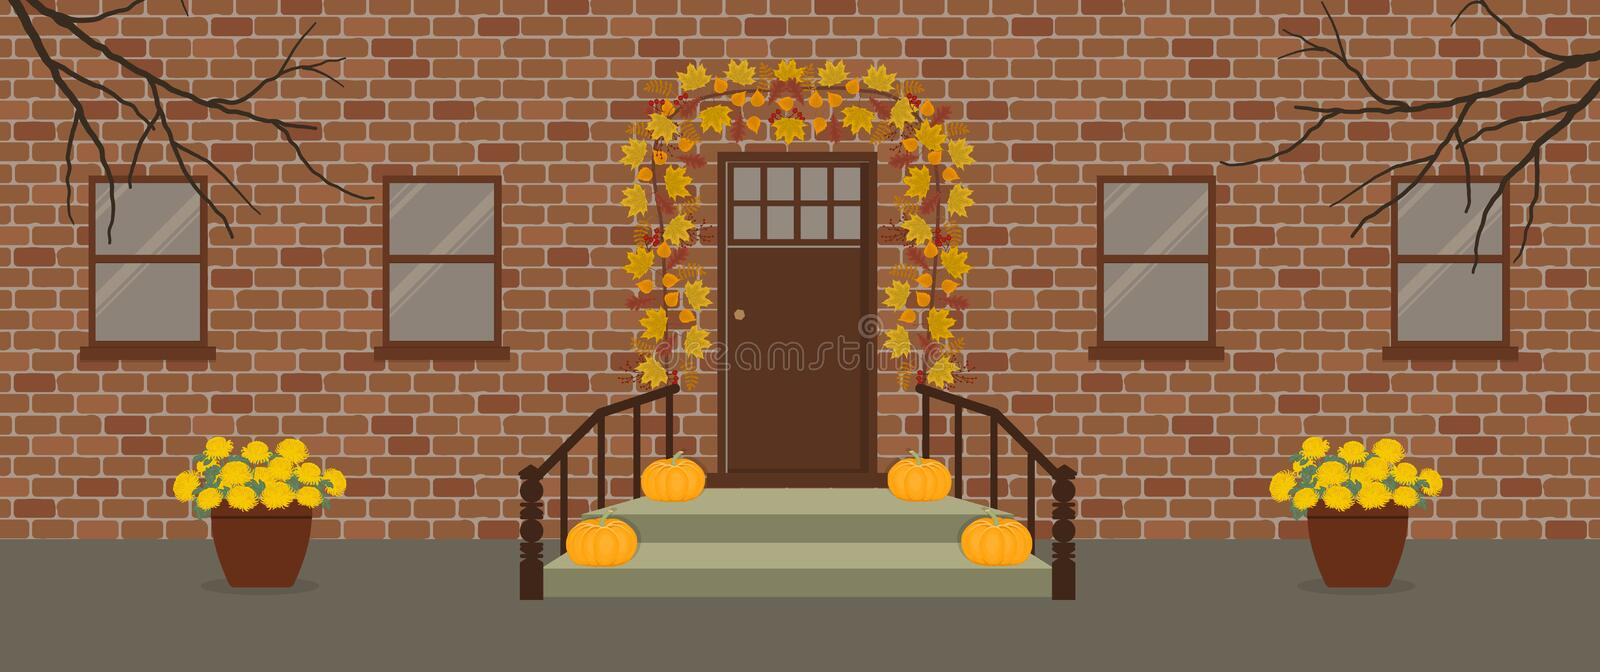 Autumn porch decor with a garland of autumn leaves vector illustration